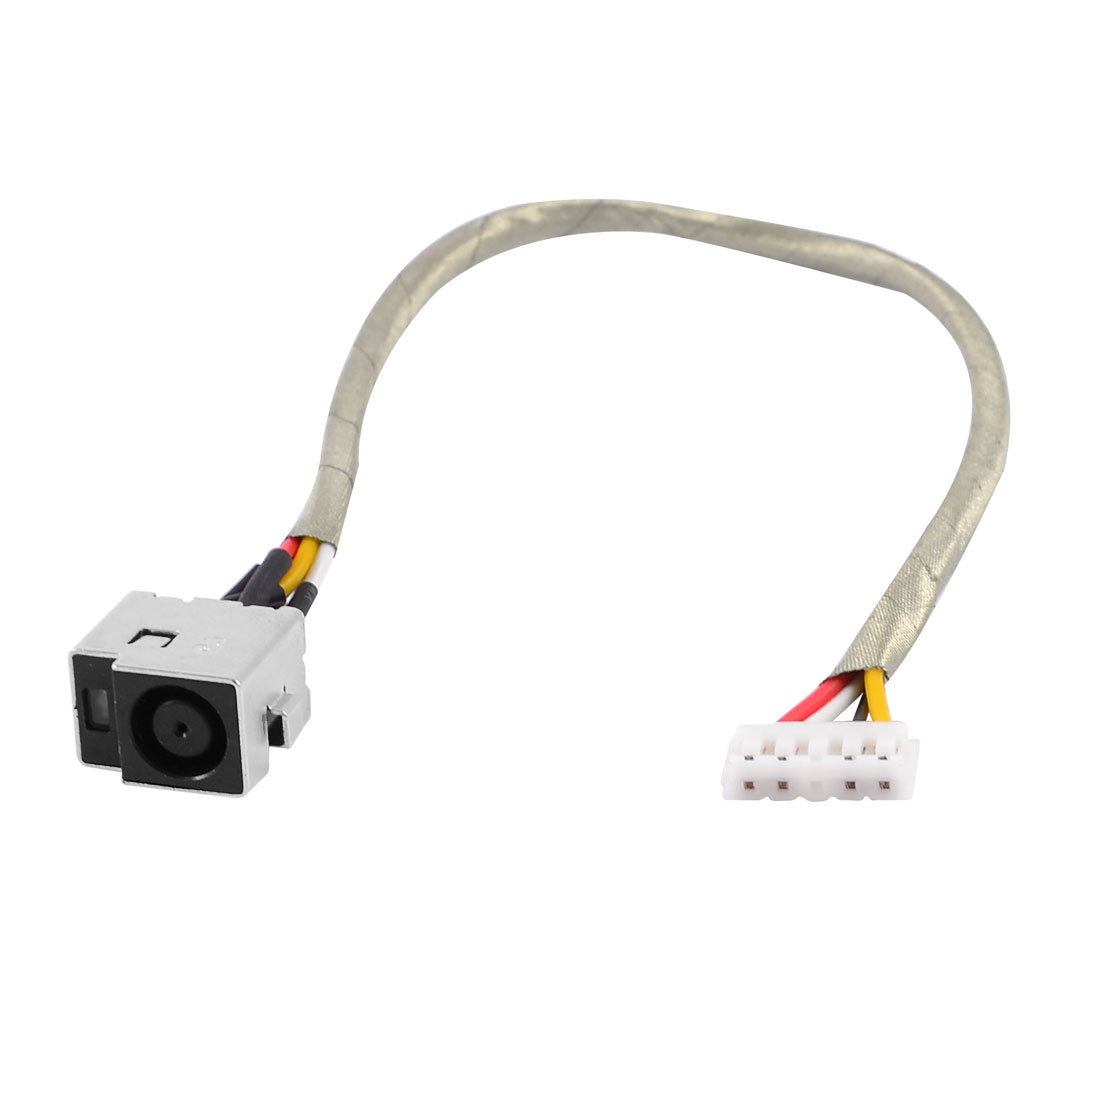 DC Power Jack Connector PJ197 w 5 Pin Cable for Laptops